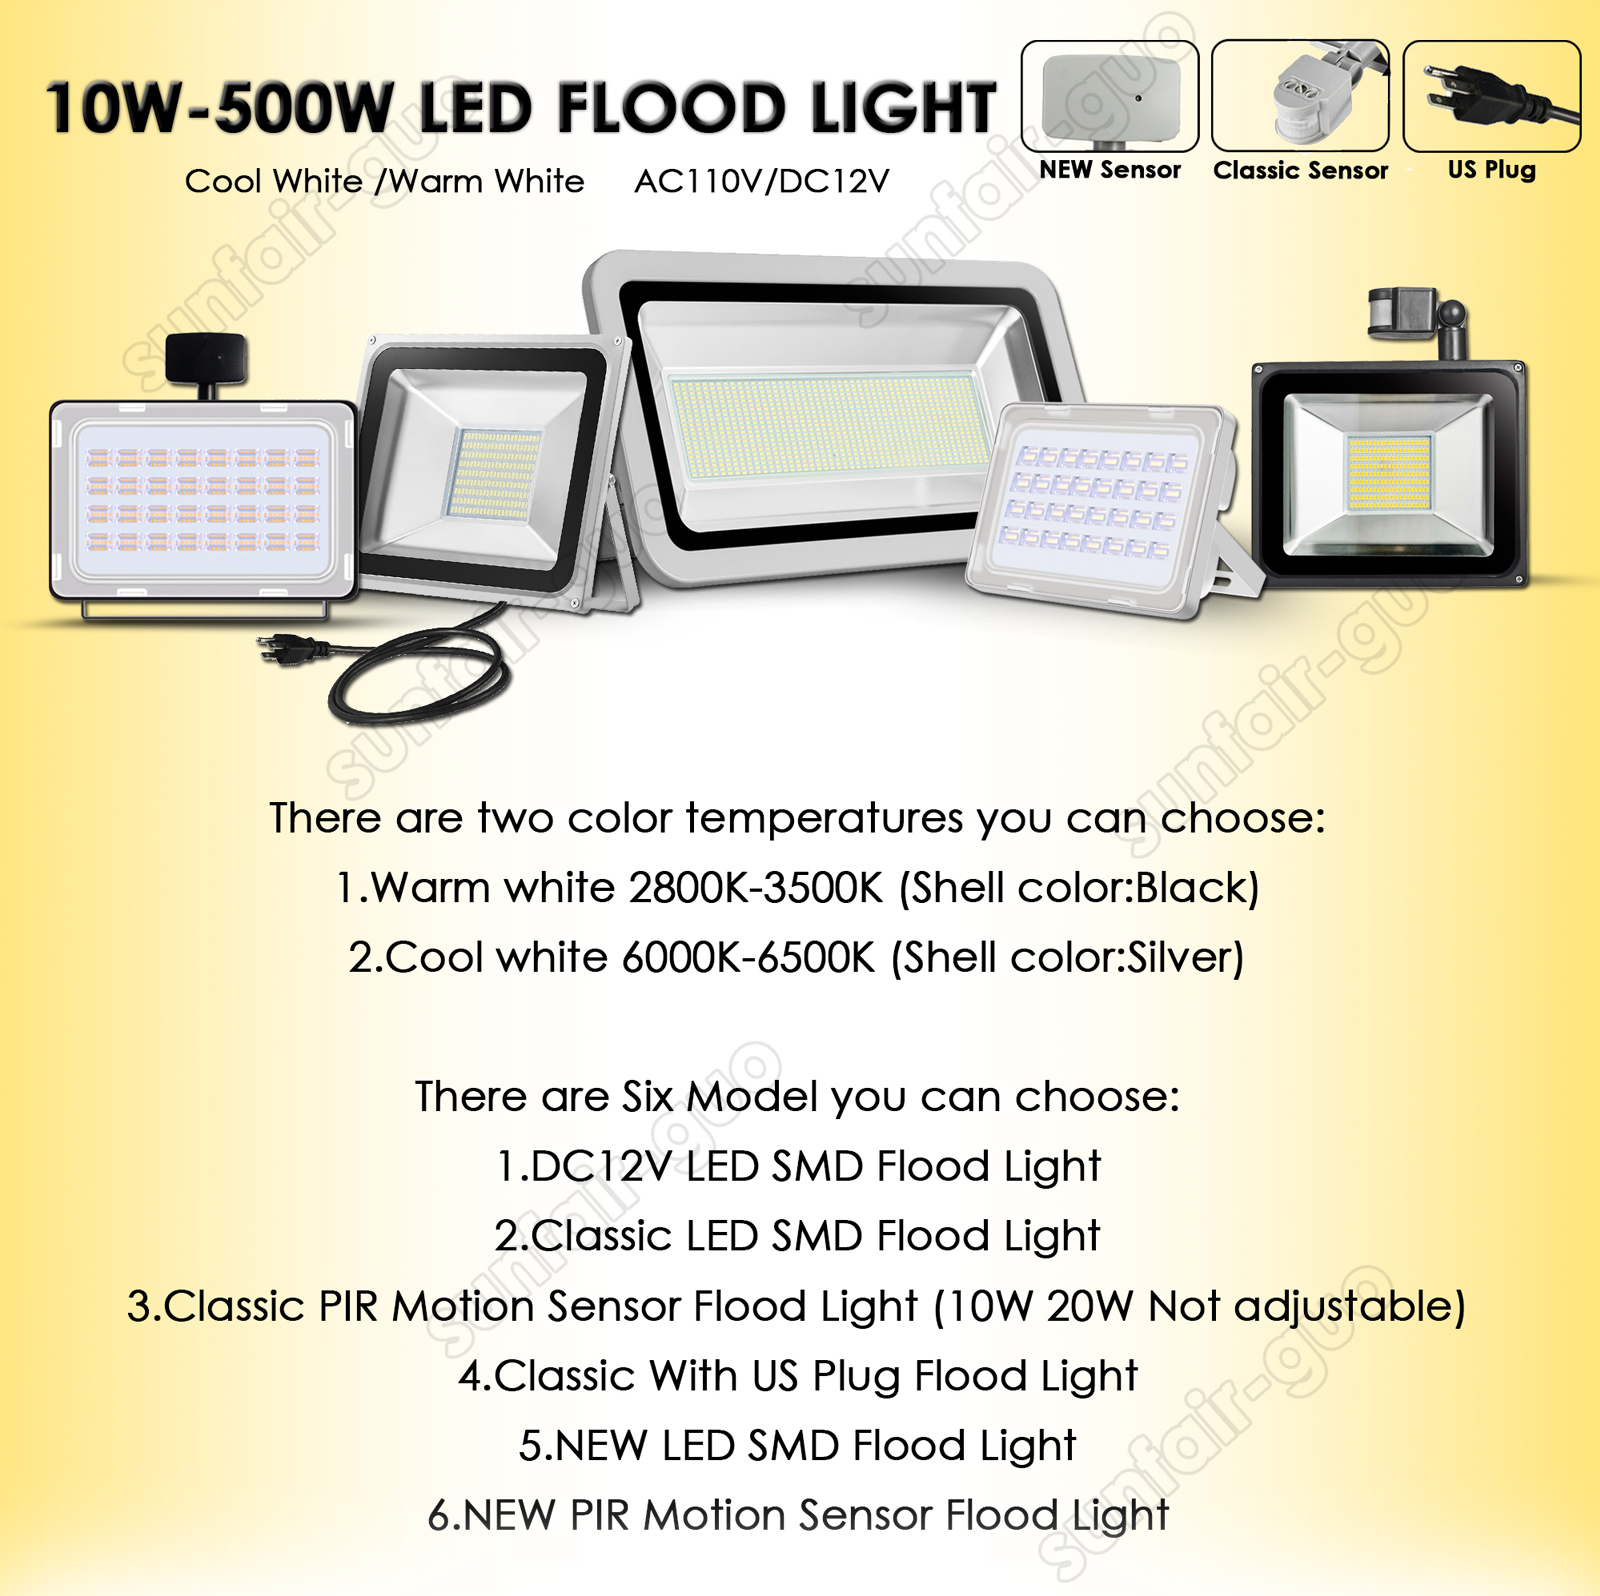 50w Led Flood Light Cool White Lamp Outdoor Garden Yard Spotlights Rondaful Motion Wiring Diagram